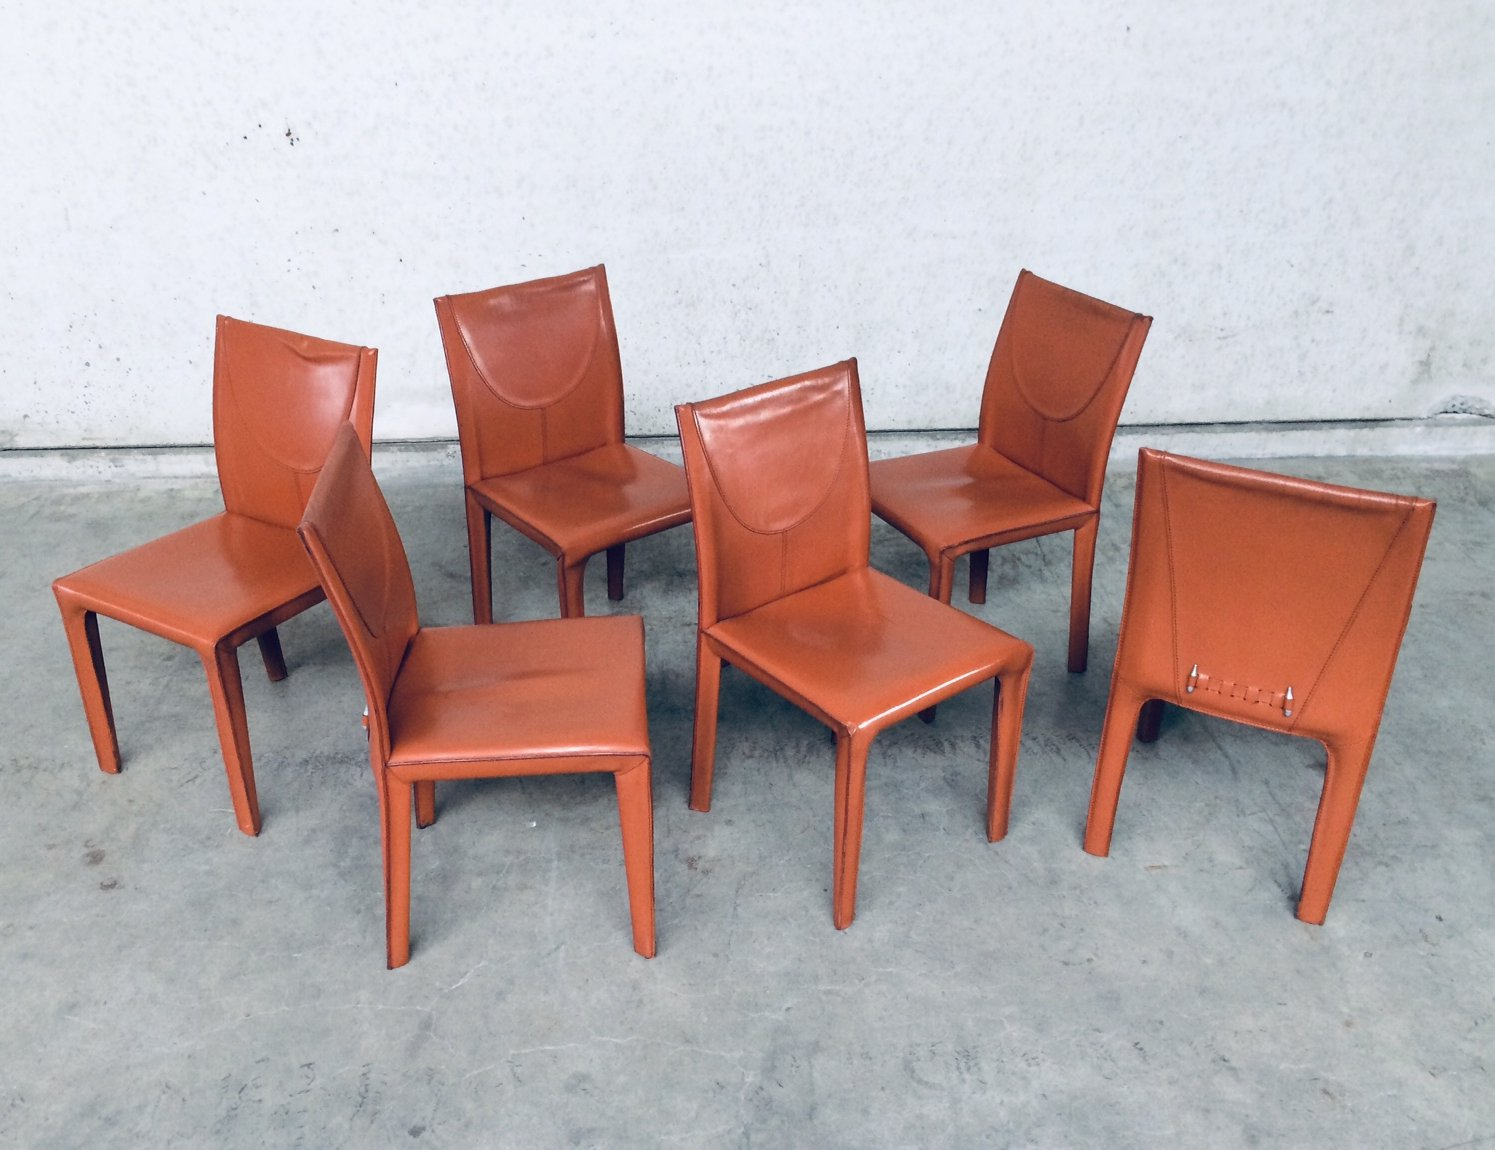 Set of 9 Leather Dining Chairs by Arper, Italy 9's   123899